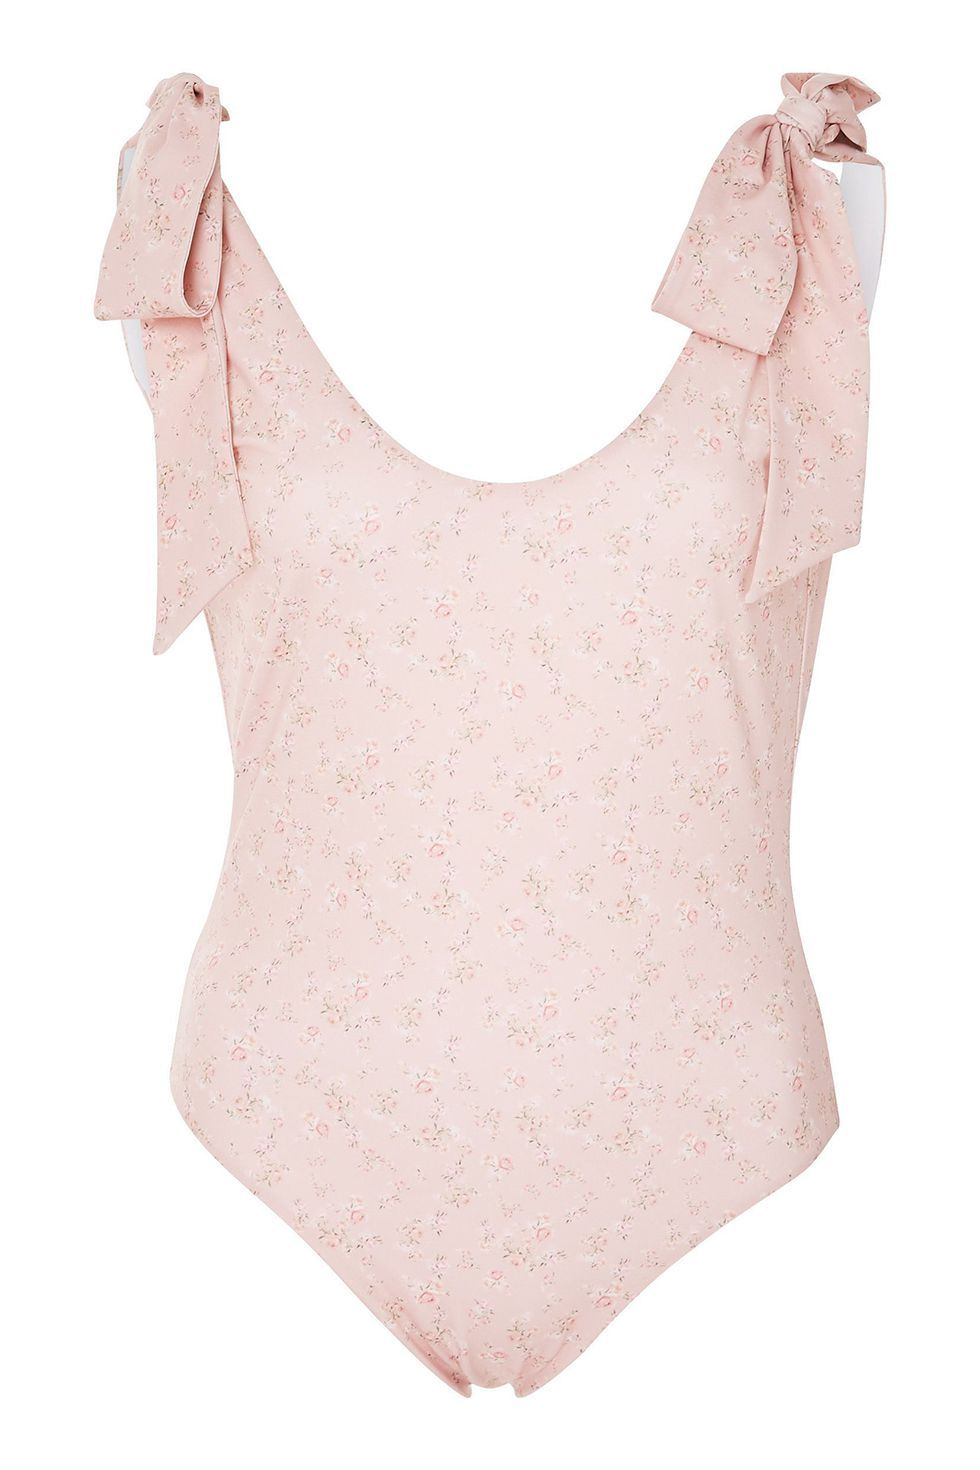 Best Pink One-Piece Posy One Piece Loveshackfancy $270.00 SHOP IT This swimsuit looks so sweet, it makes my teeth hurt. (You can thank the baby-pink floral print and shoulder bows for that.)